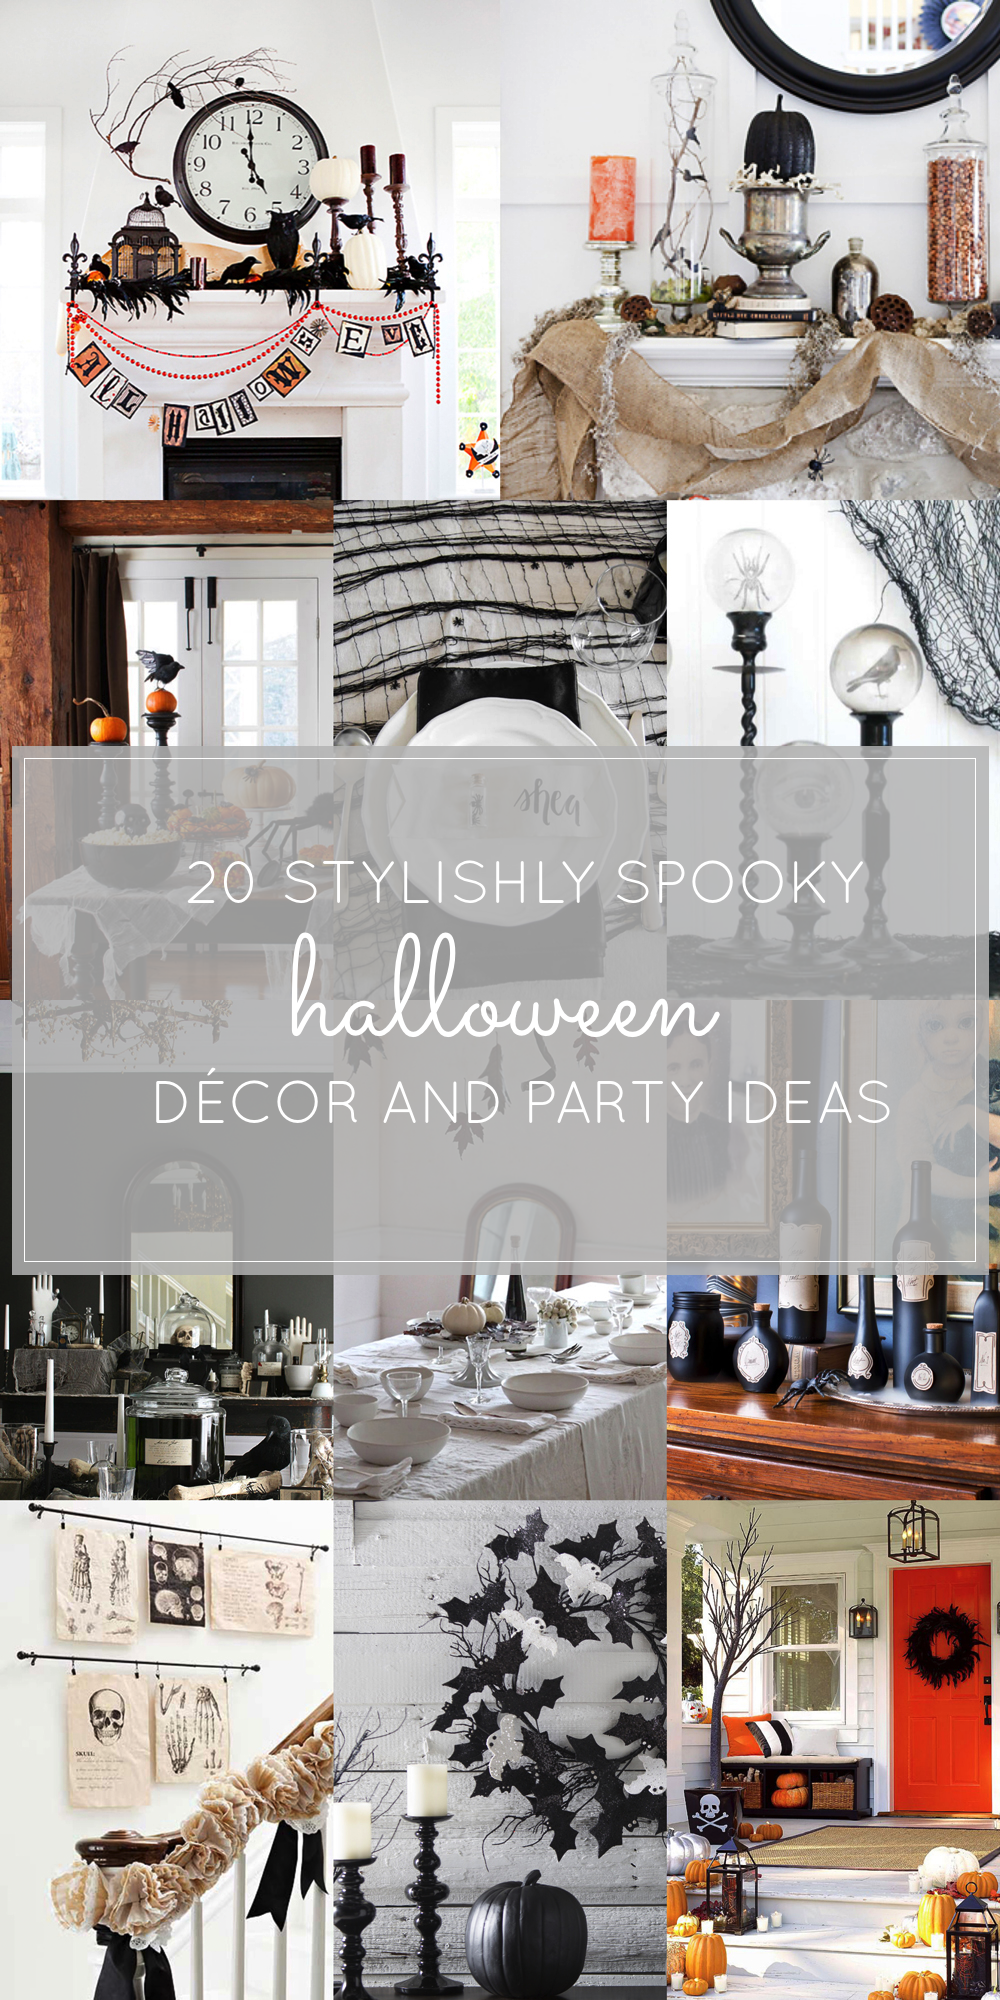 20 Stylishly Spooky Chic Hallowen DÉCOR AND PARTY IDEAS